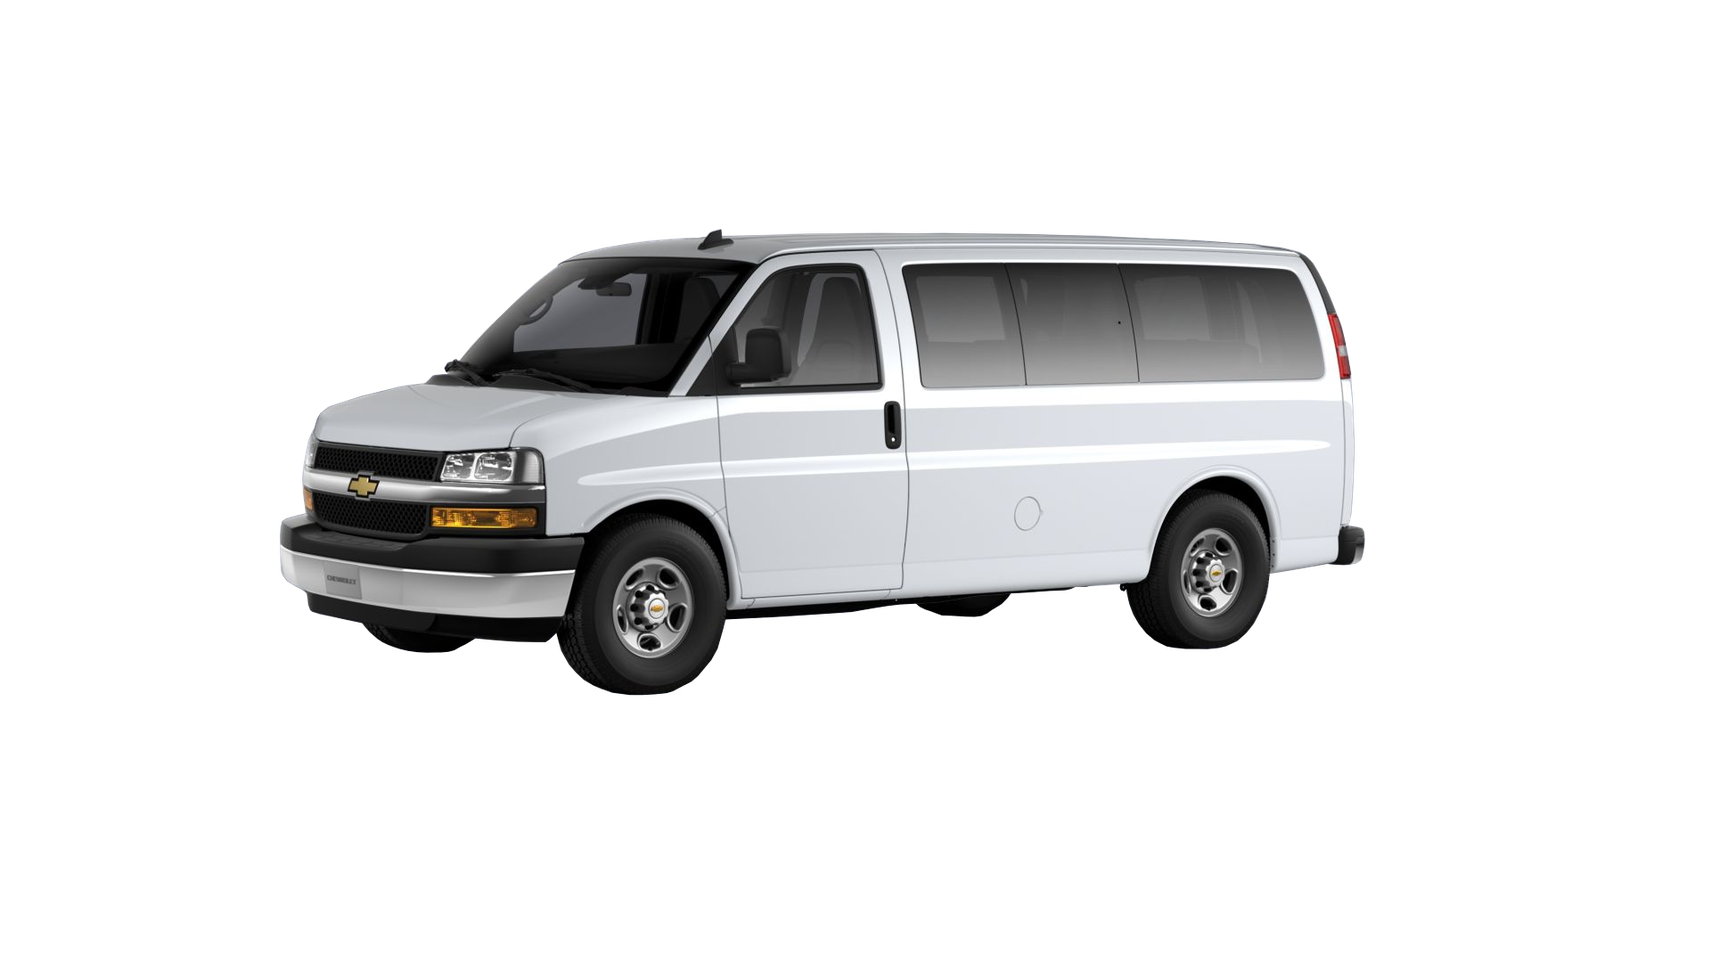 Chevrolet Express Passenger 2020 LT 3500 Regular Wheelbase